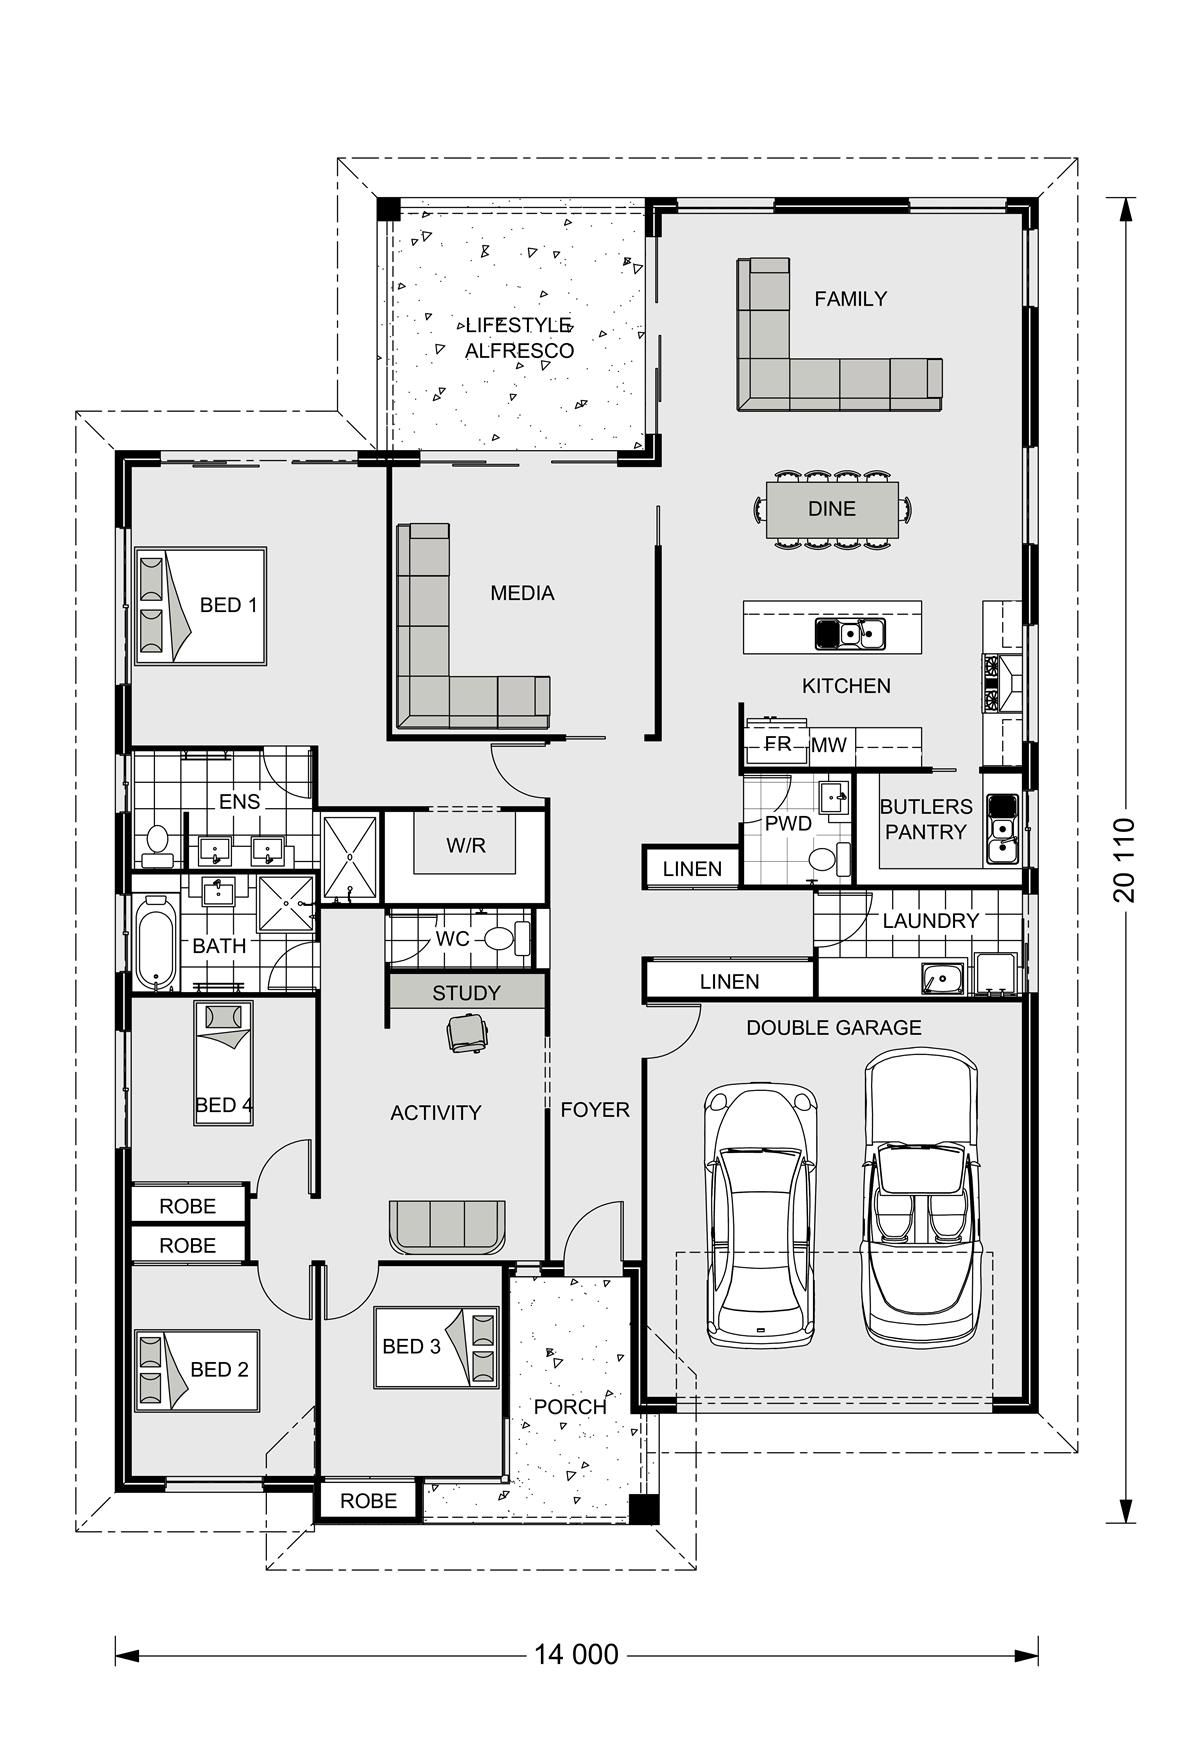 Gj gardner house plans hawkesbury 255 our designs orange for Gardner floor plans